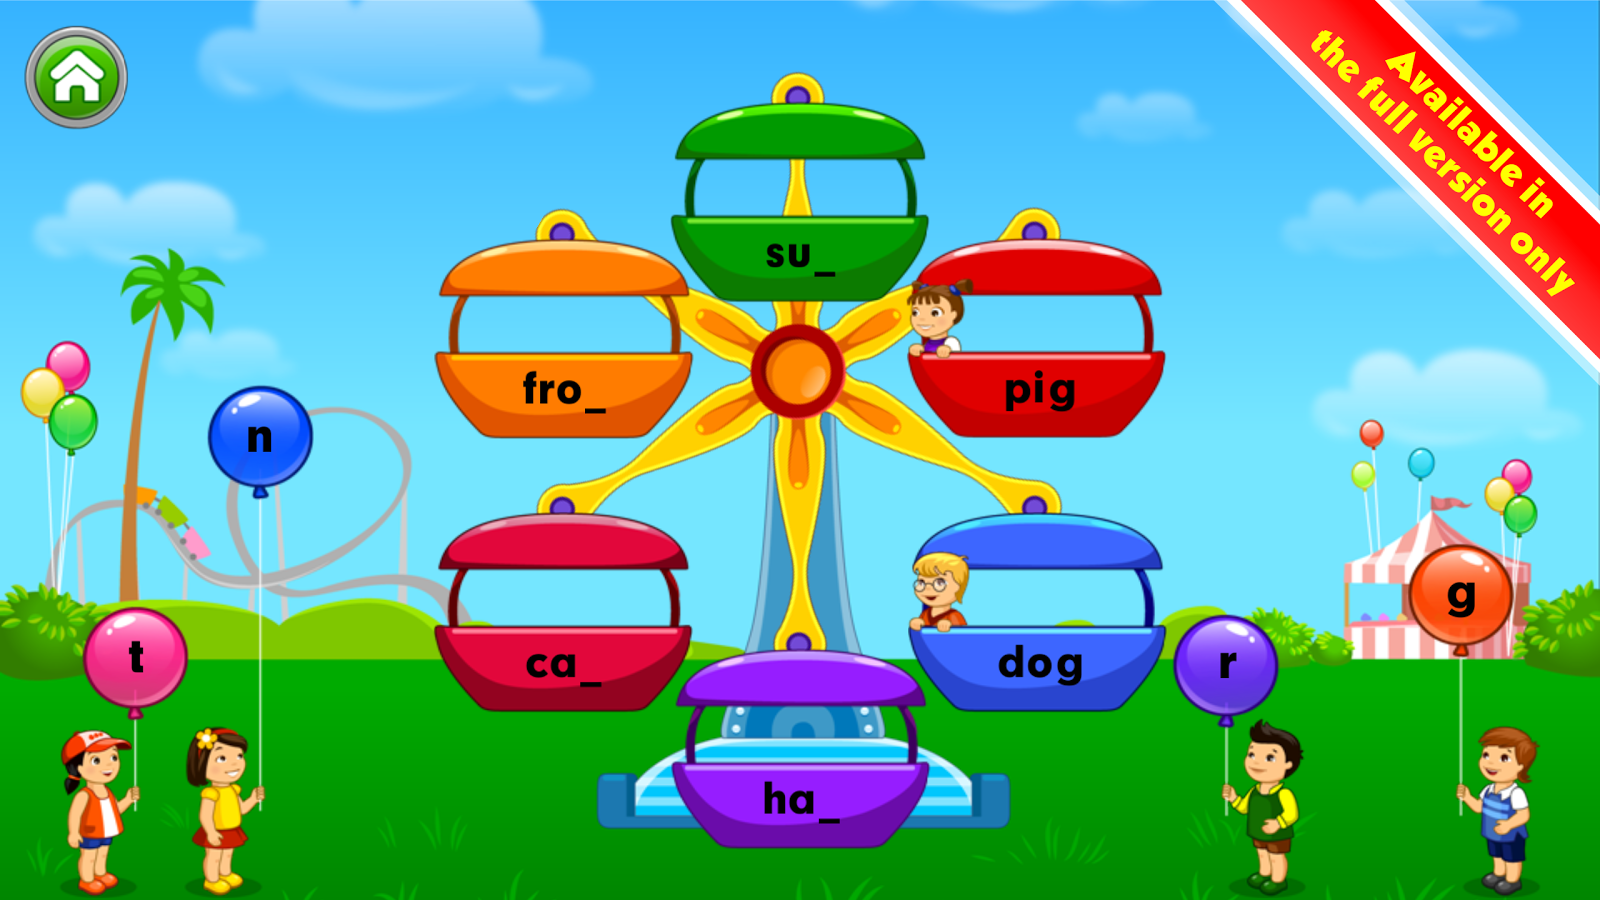 Worksheet How To Teach Phonics To Kids At Home kids abc letter phonics lite android apps on google play screenshot